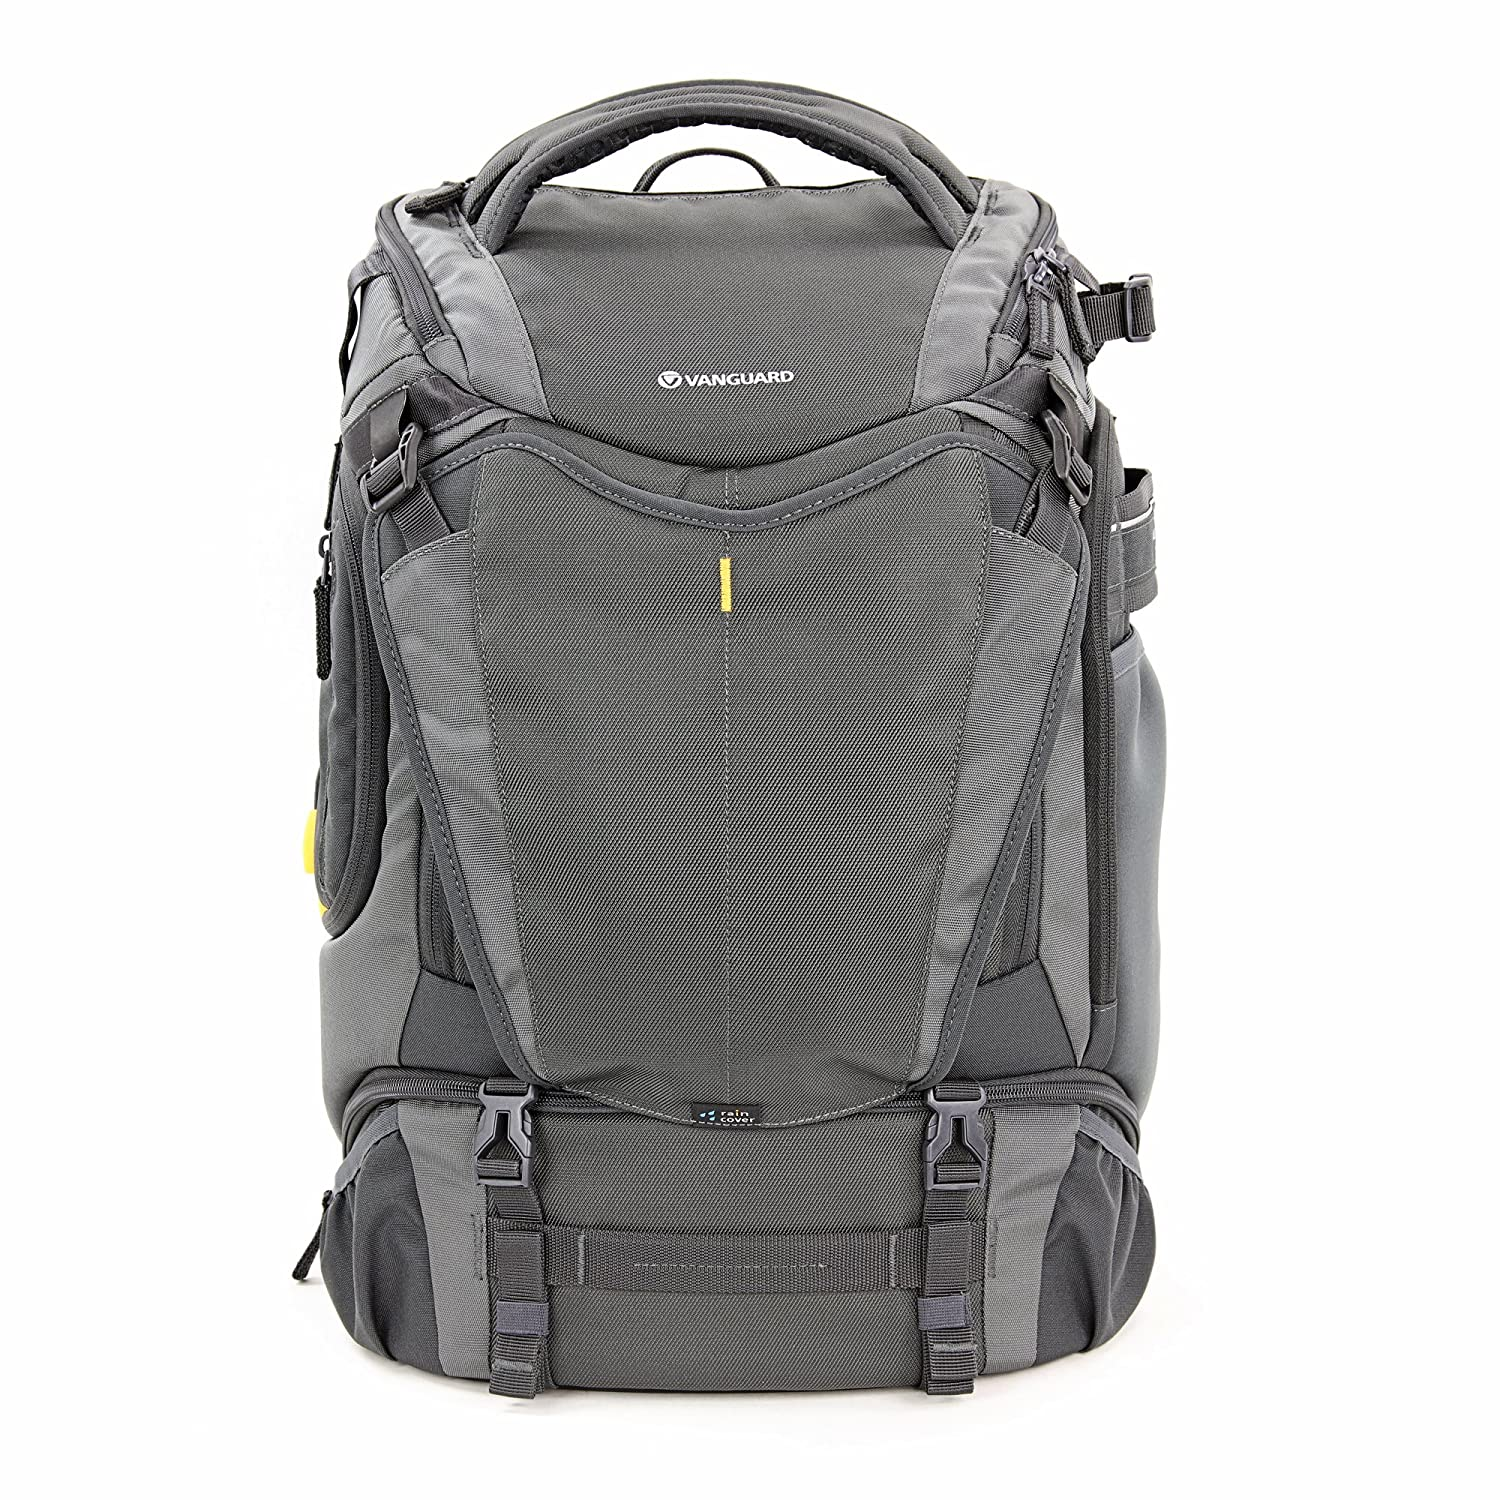 Vanguard Alta Sky 51D Backpack Black Friday Deals 2019